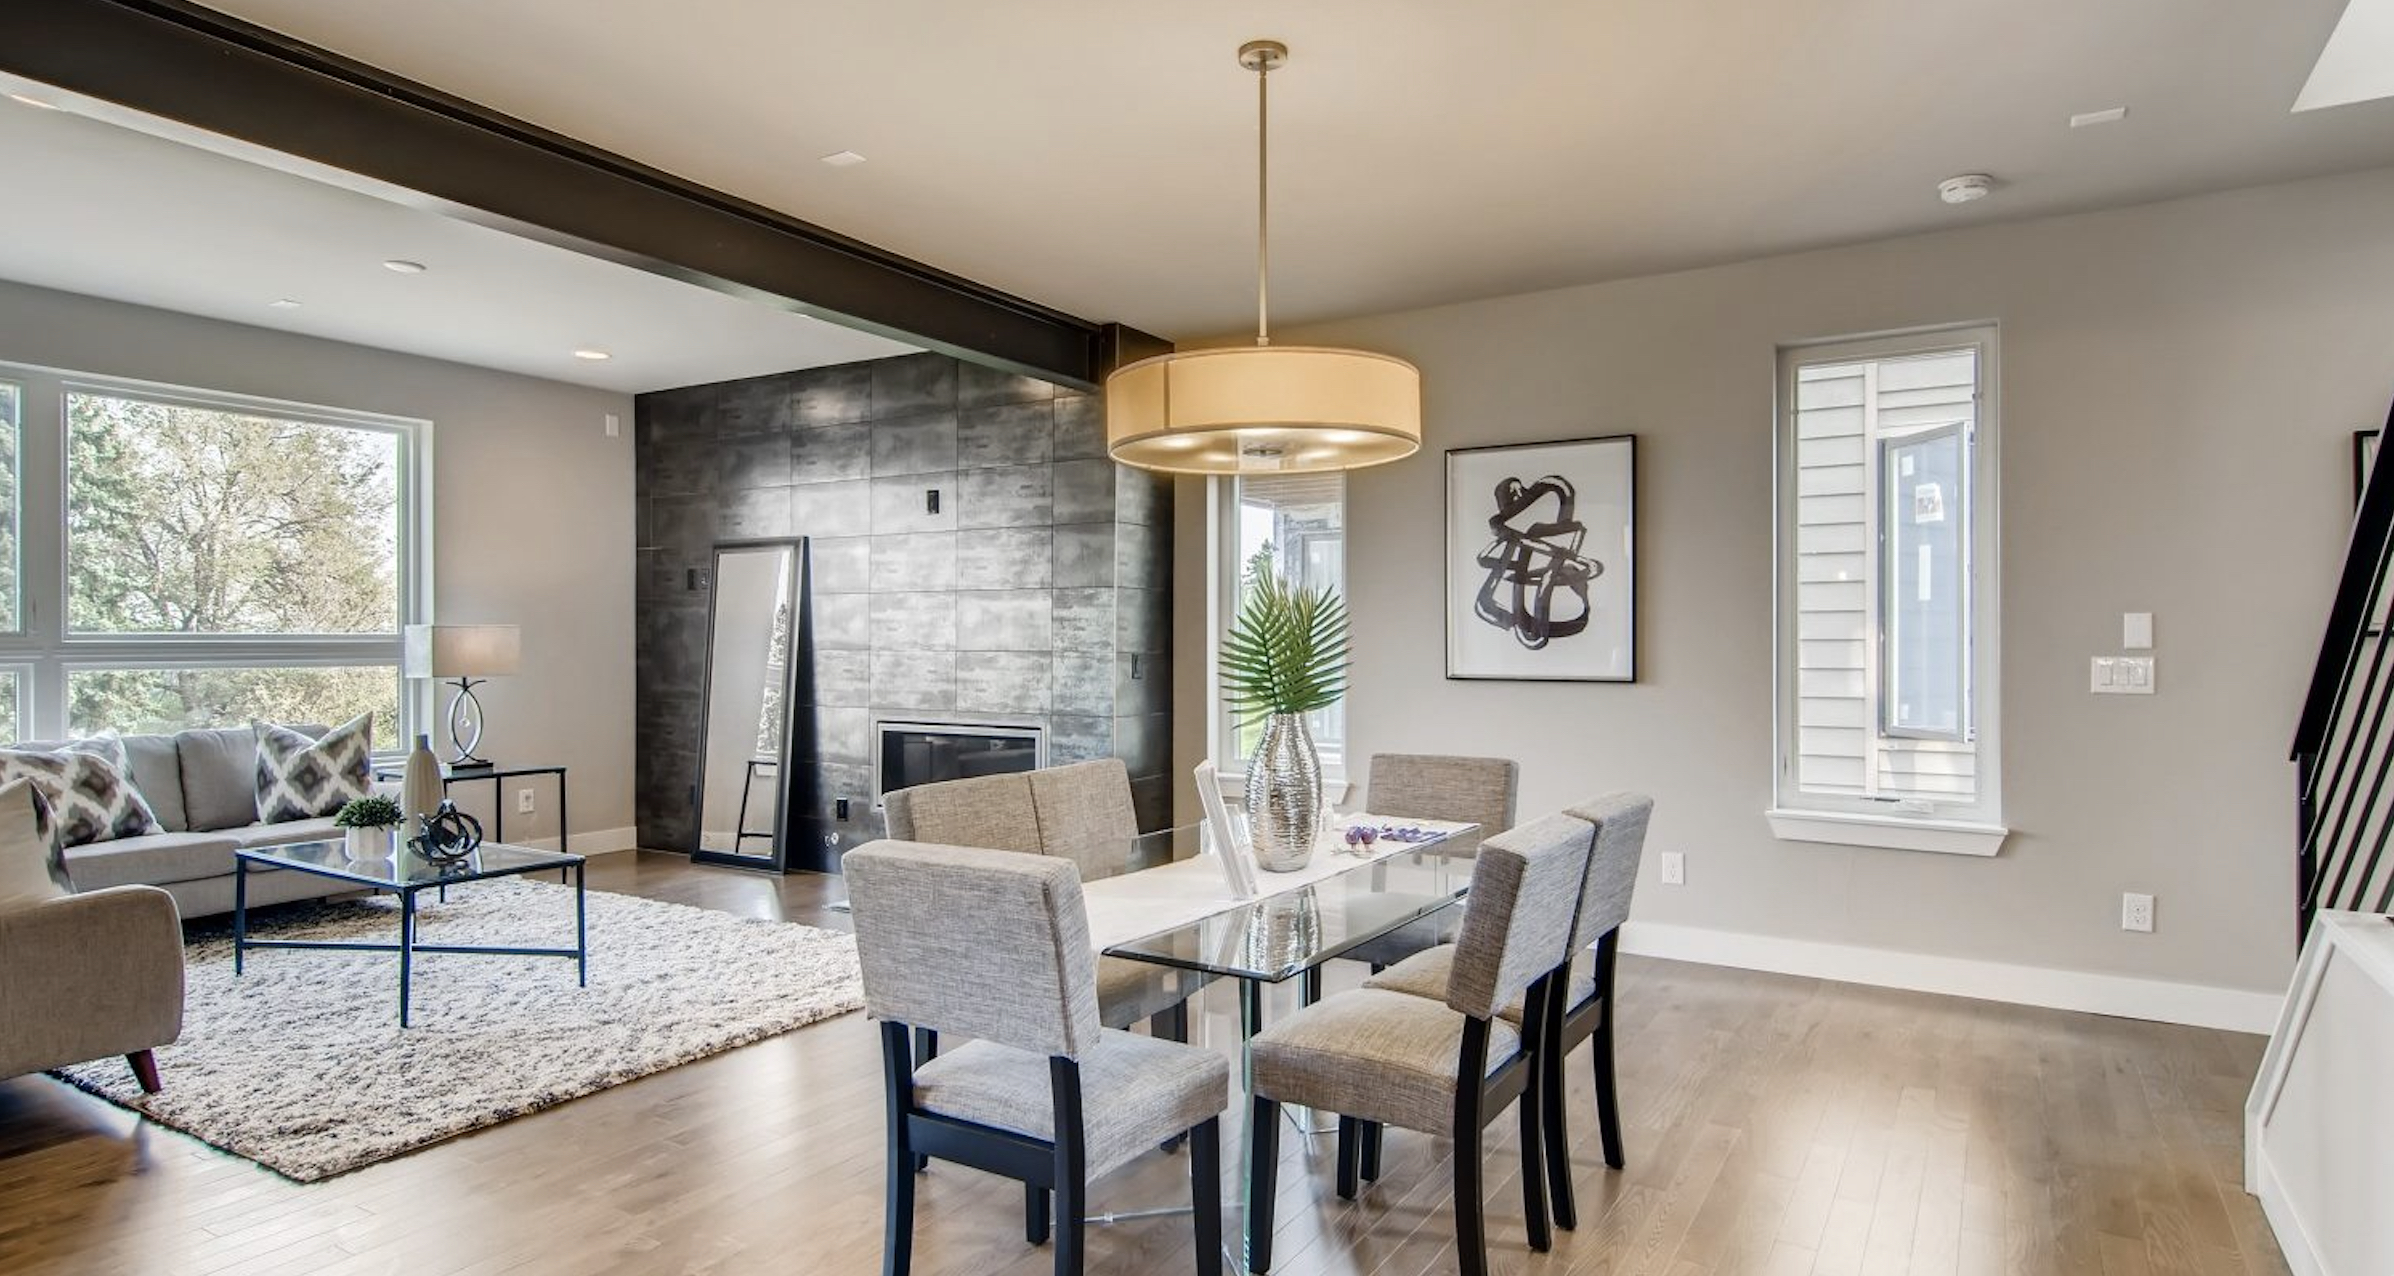 5390' Community by Koelbel in the Berkeley Tennyson Neighborhood Denver New Construction Homes For Sale Living Dining